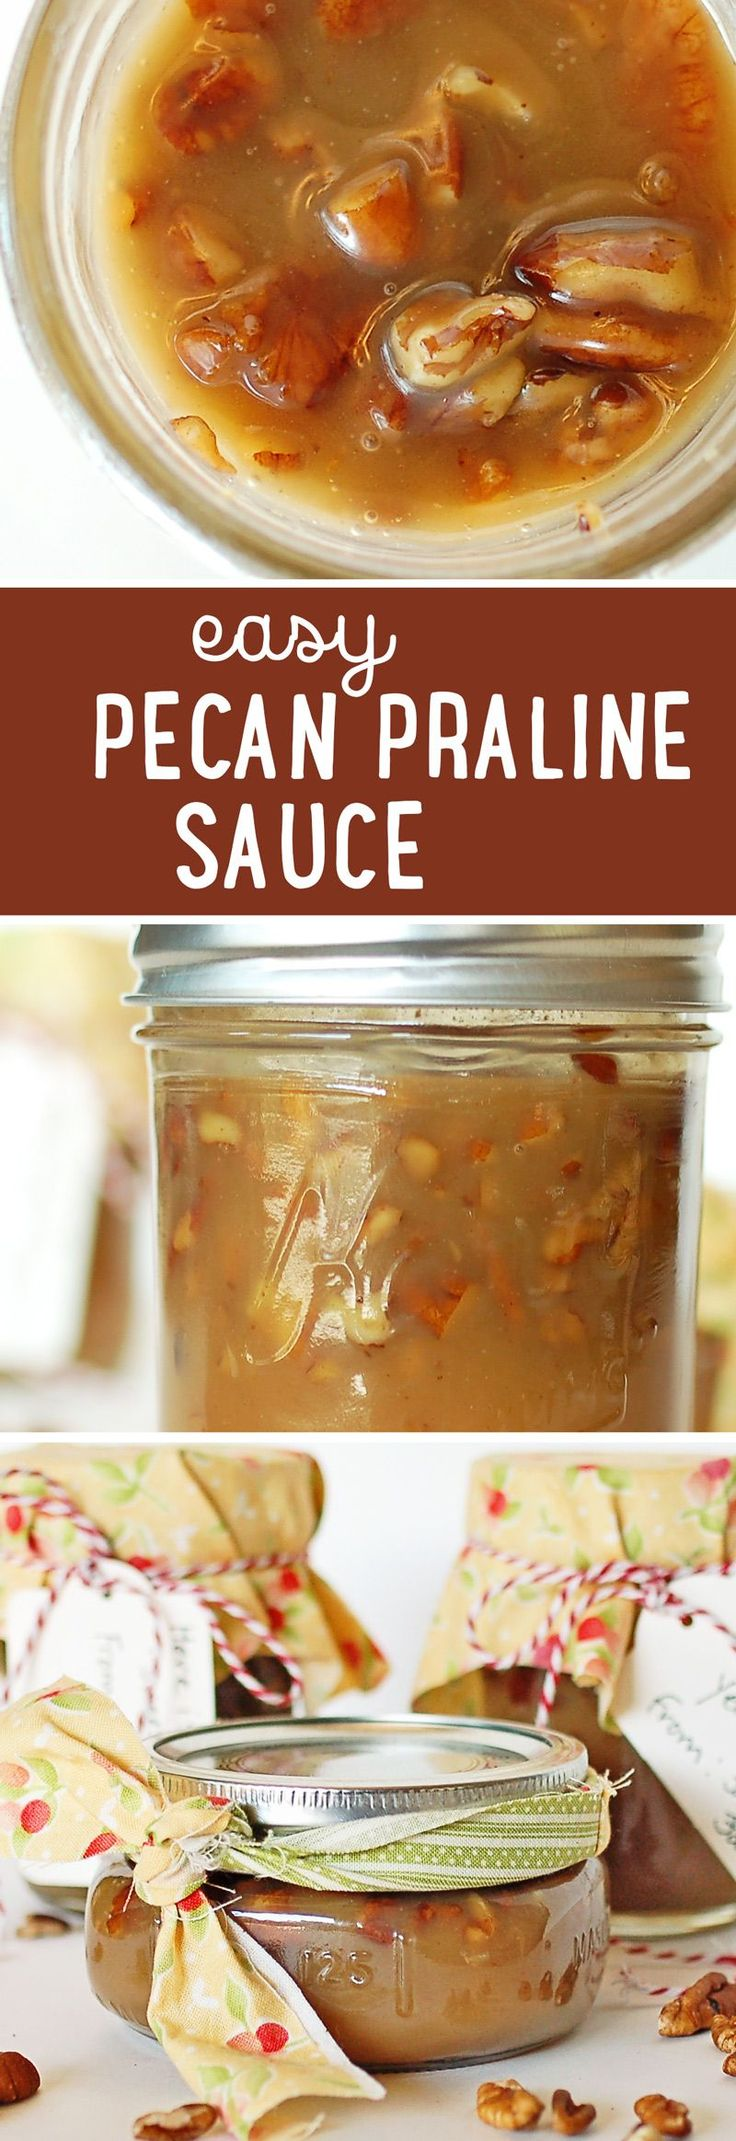 Easy Pecan Praline Sauce (teacher gift)